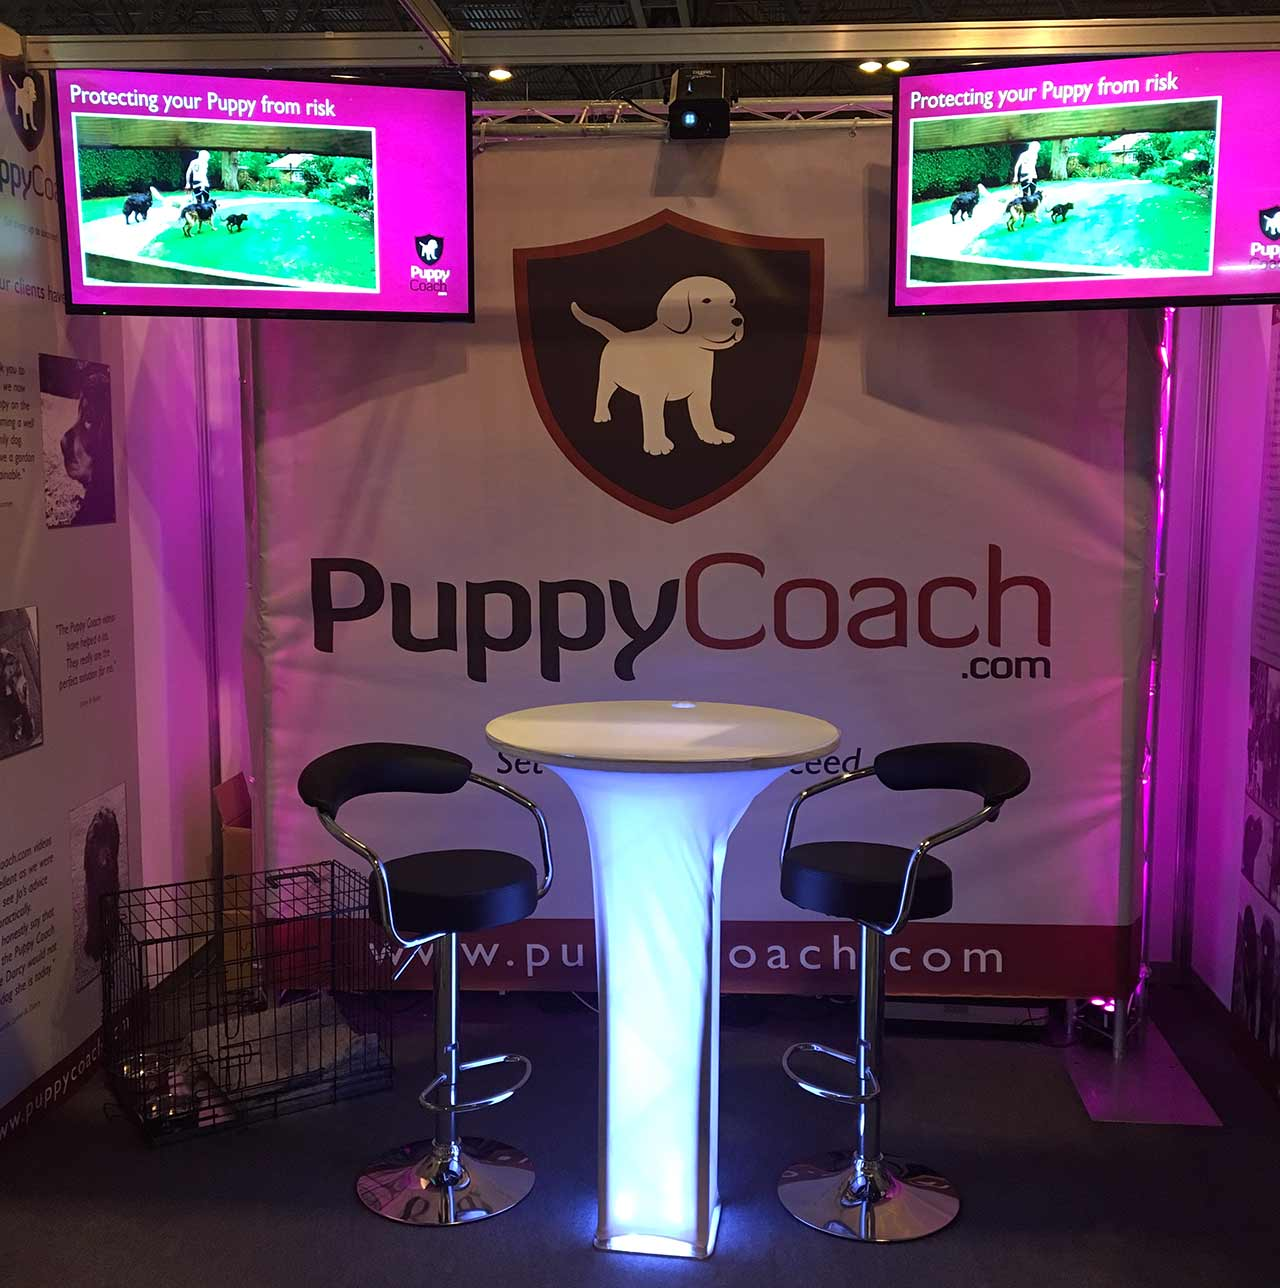 PuppyCoach.com stand at Crufts 2017